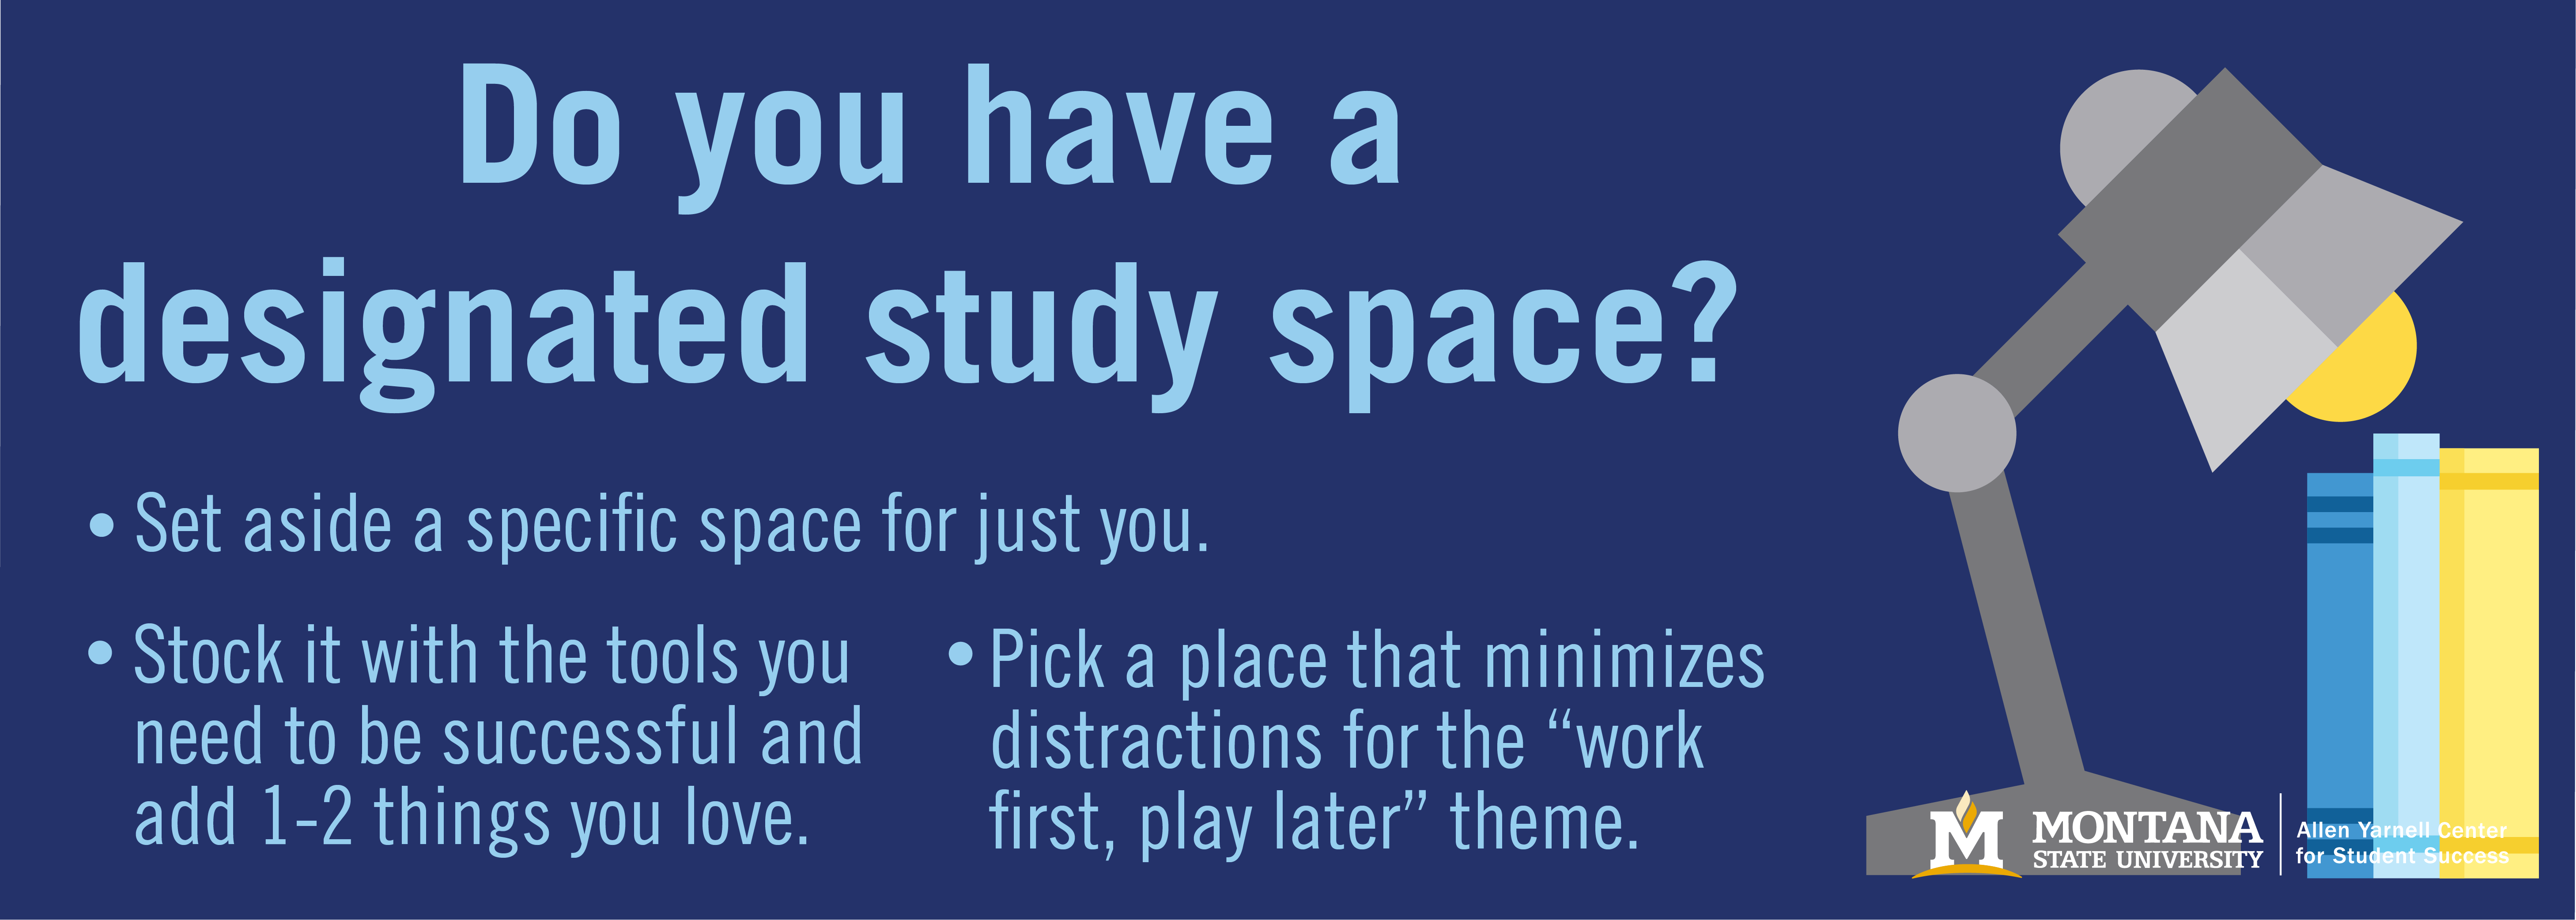 """Do you have a designated study space? Set aside a specific space for just you. Stock it with the tools you need to be successful and add 1-2 things you love Pick a place that minimizes distractions for the """"work first, play later"""" theme."""